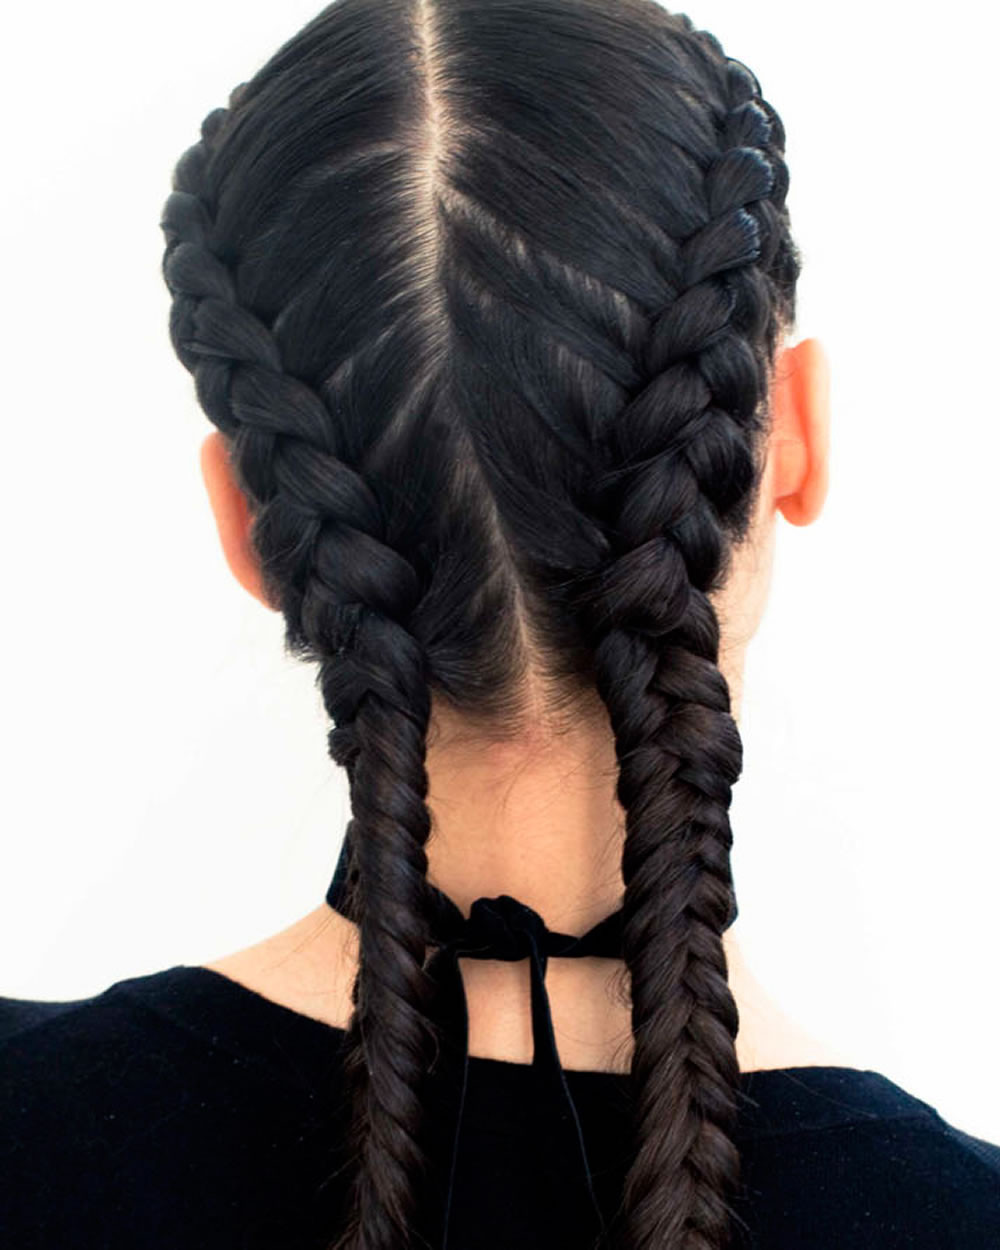 French Braid With Weave Hairstyles  French Braids 2018 Mermaid Half up Side Fishtail etc